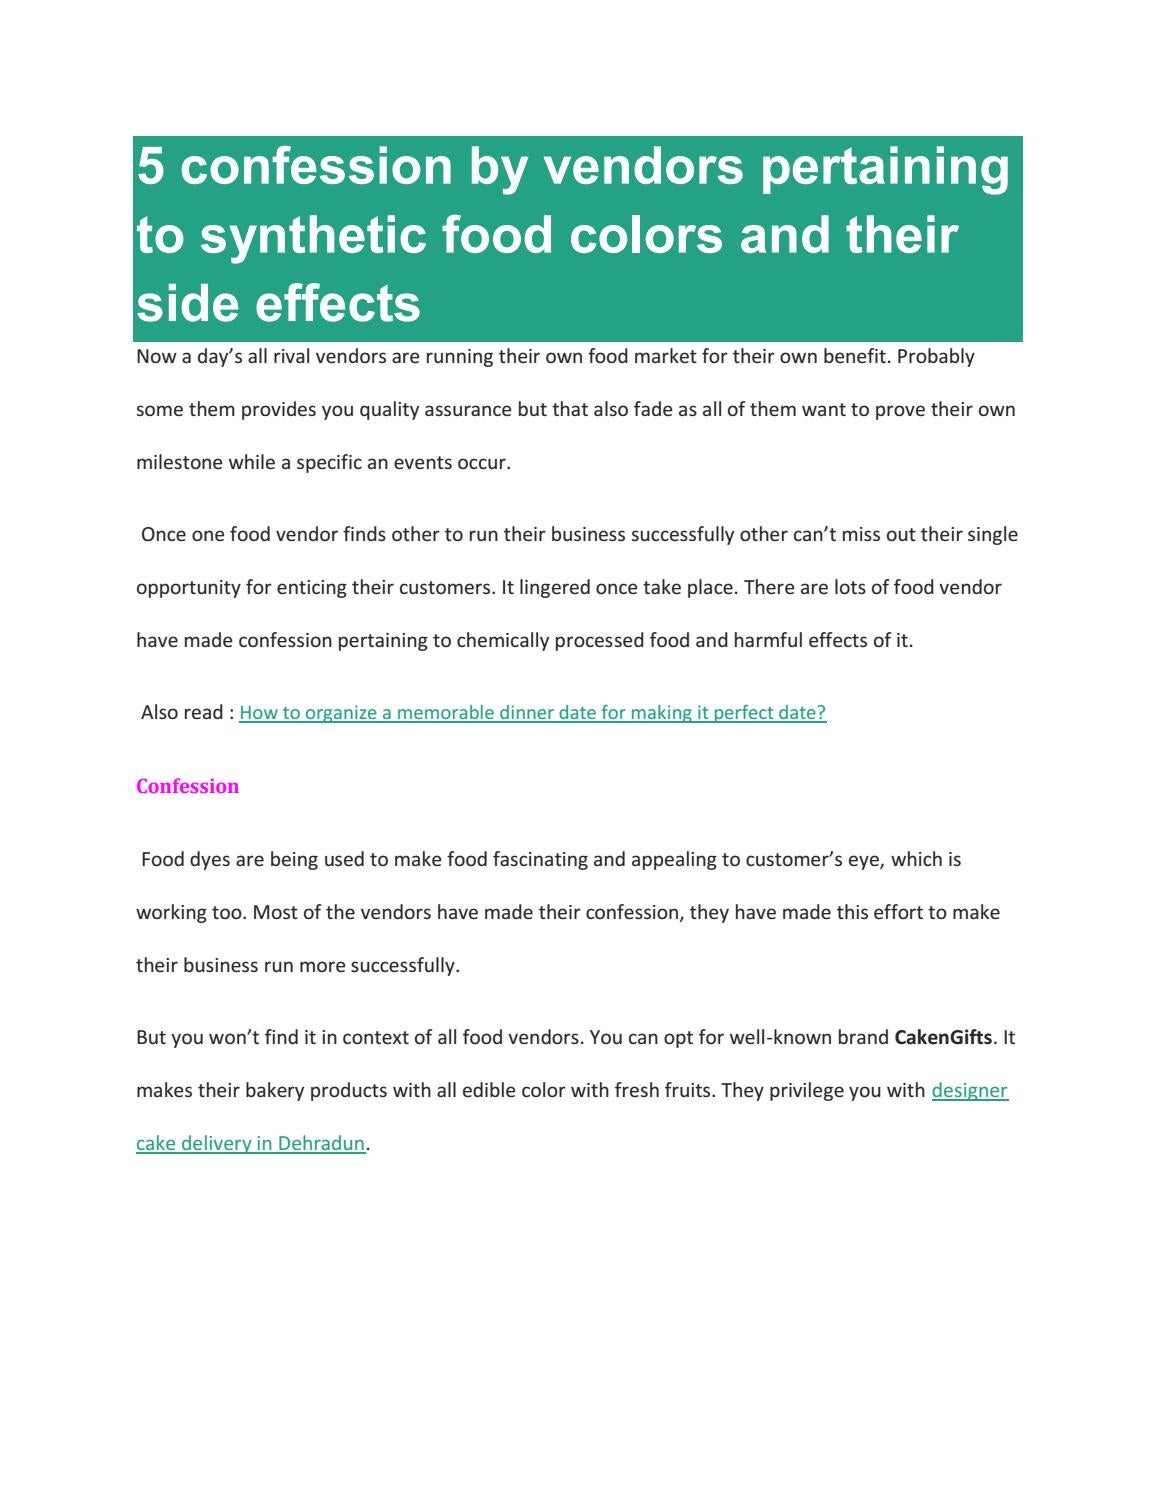 5 confession by vendors pertaining to synthetic food colors ...